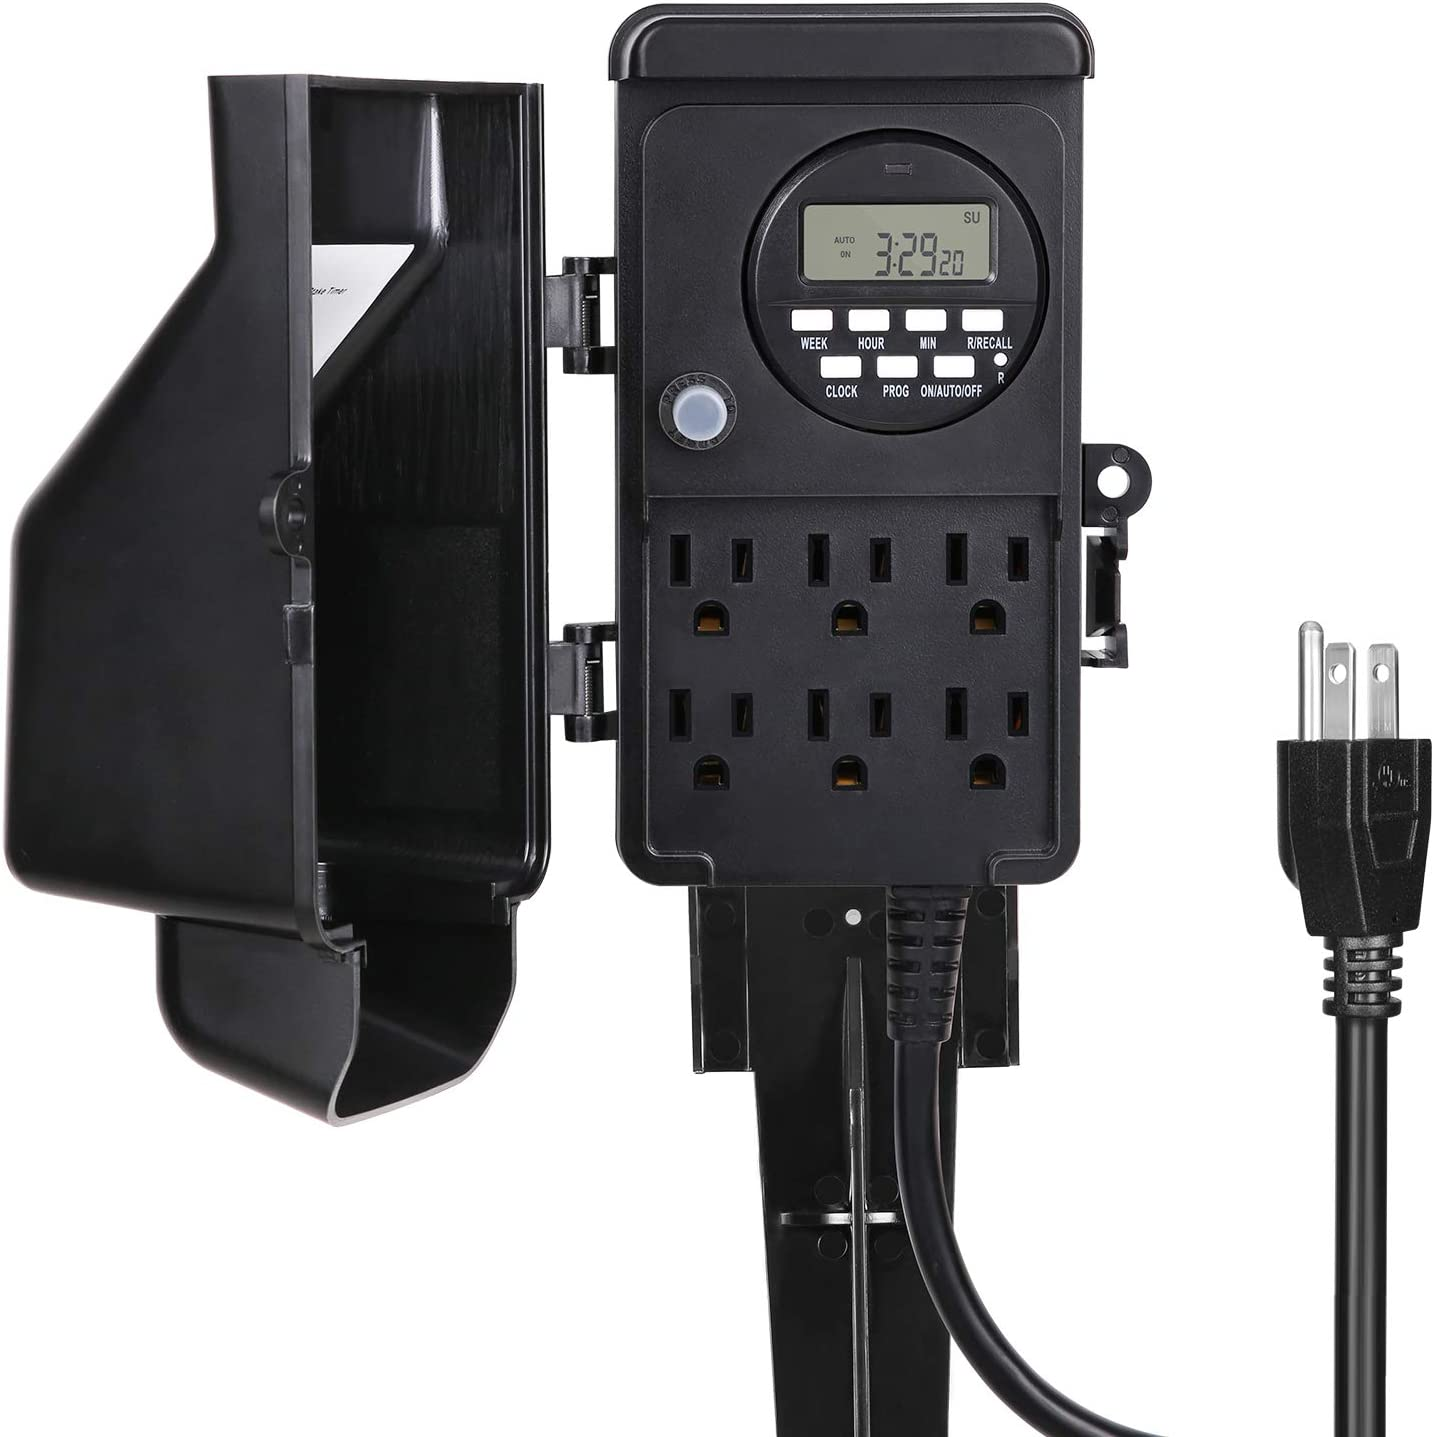 DEWENWILS Outdoor Digital Power Strip Timer, Outdoor Yard Stake Timer, Waterproof with 6 Grounded Outlets, 6ft Extension Cord, Digital Timer for Pool, Pumps, Ponds, Fountain, 1800W/15A Heavy Duty